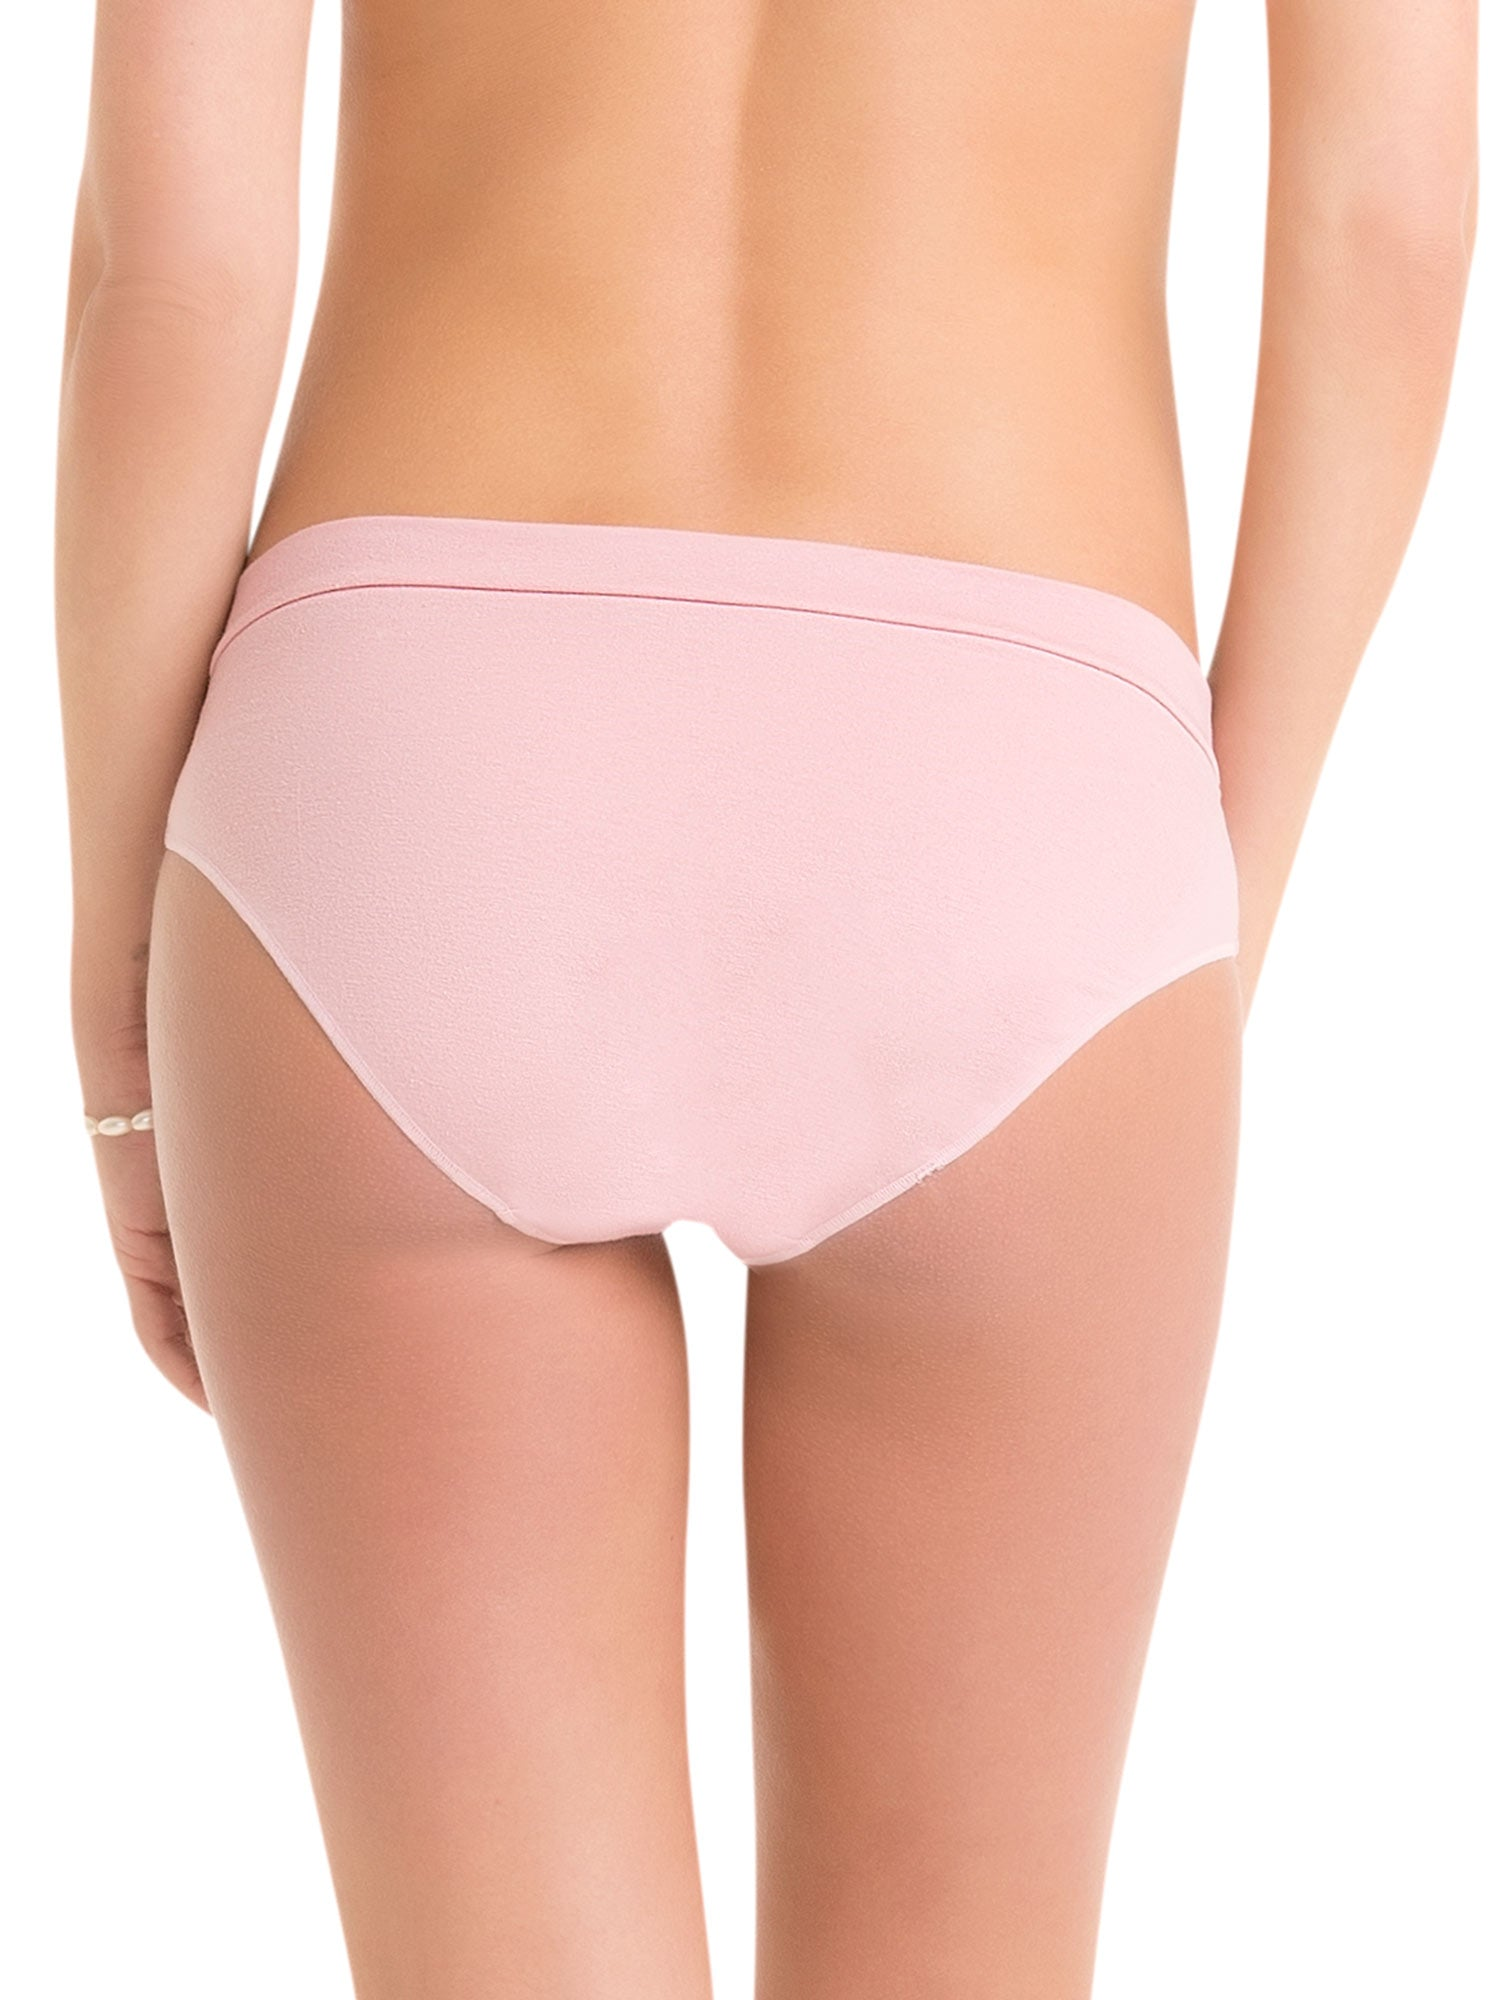 Maternity 3 Panty Pack 31347